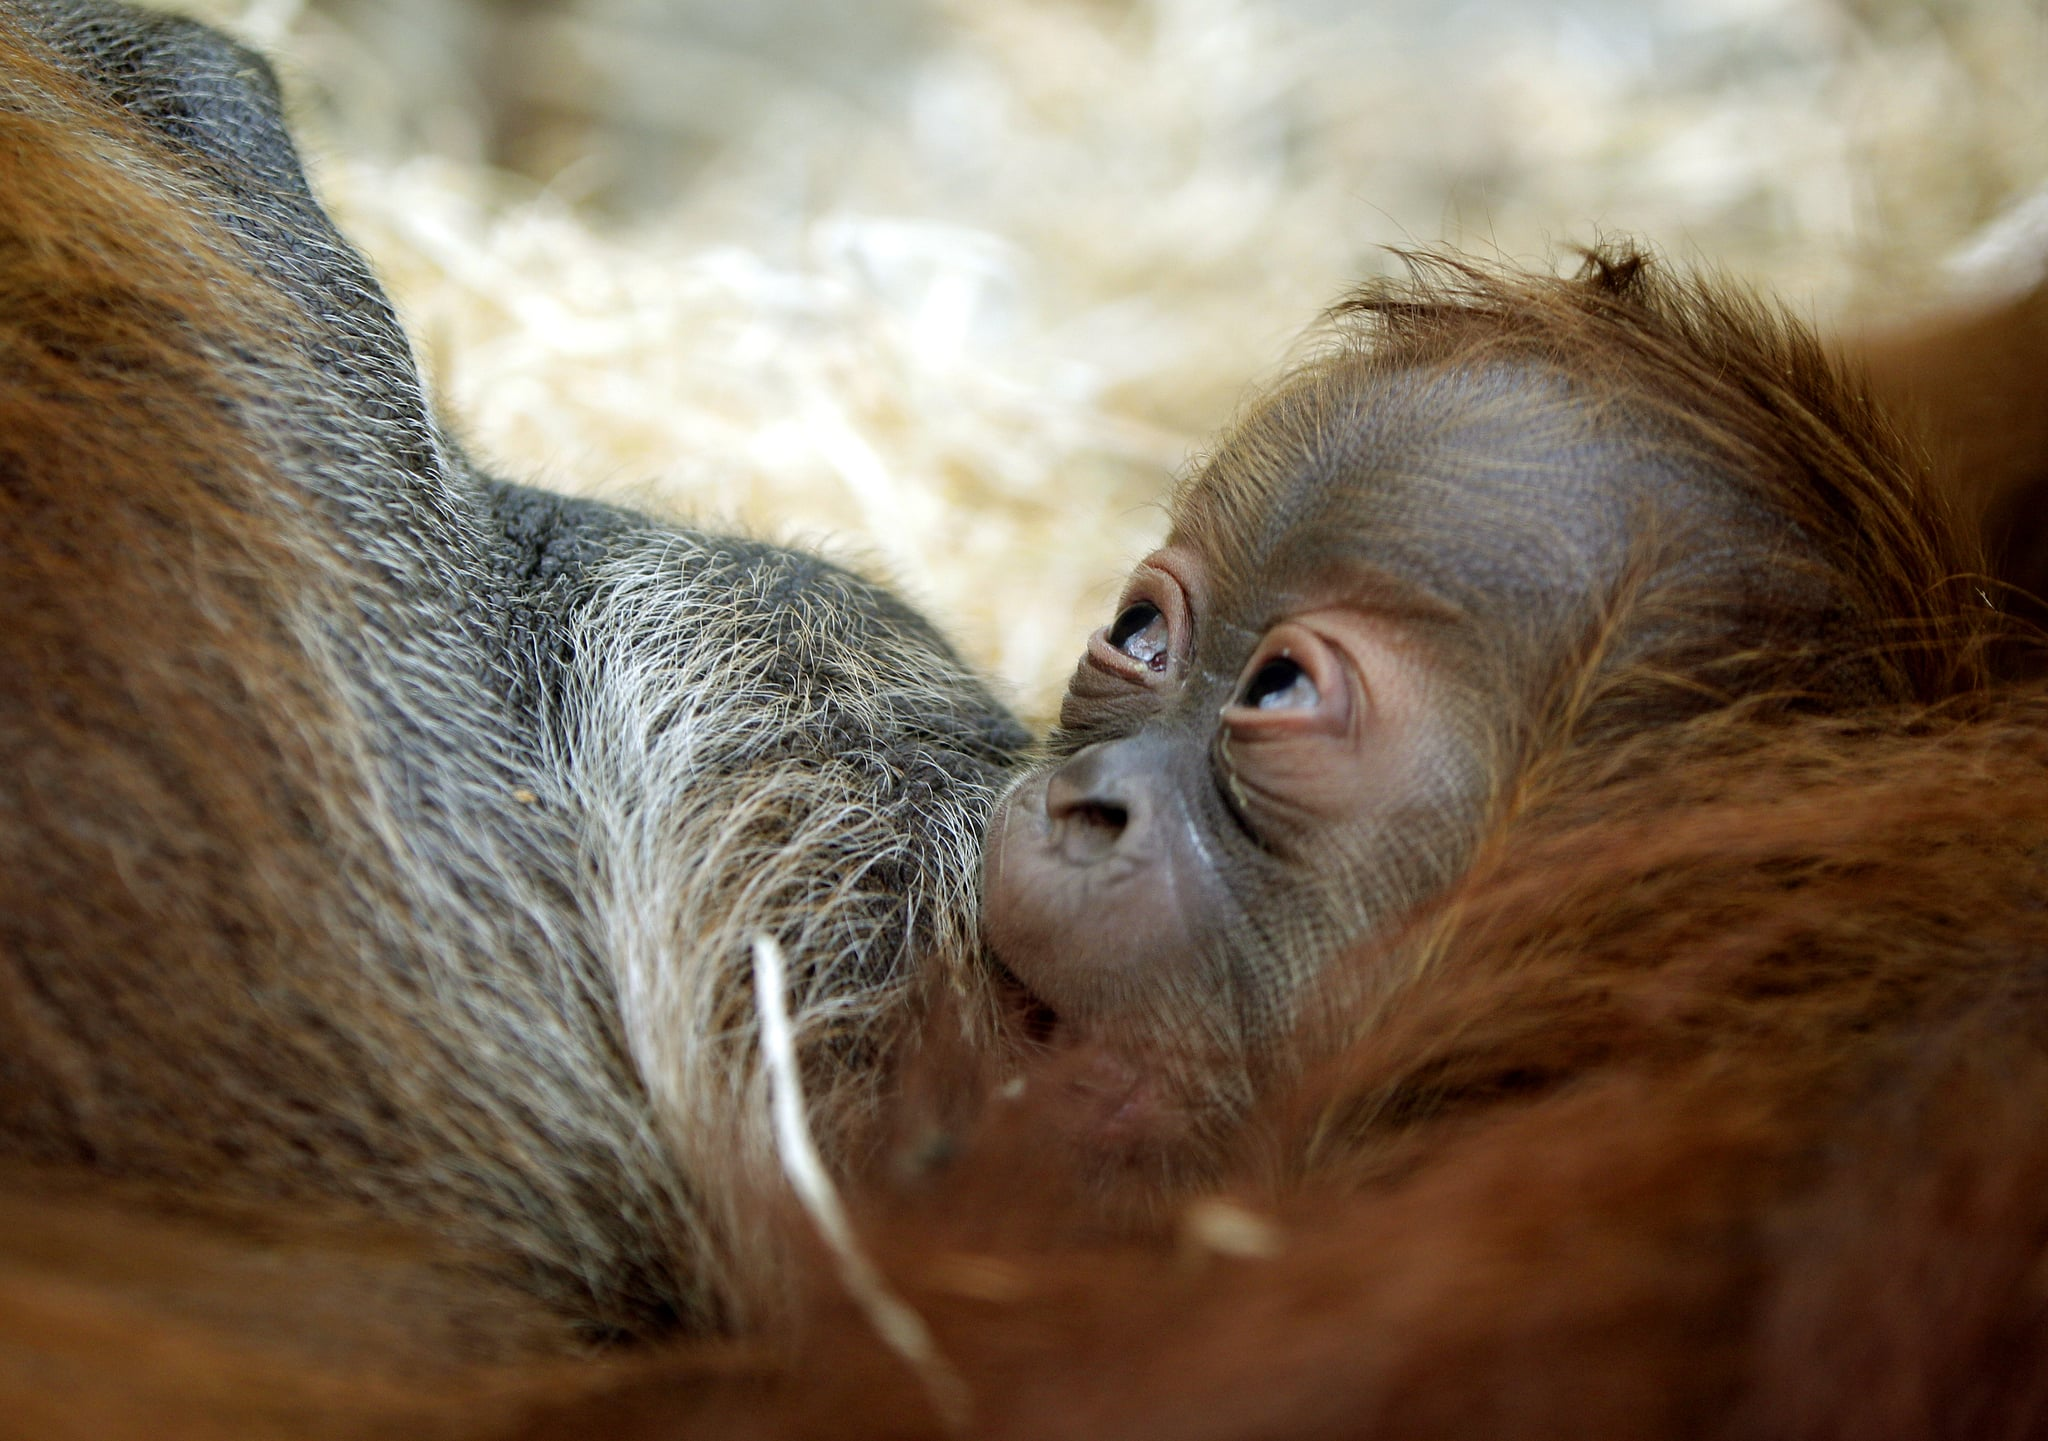 A young orangutan only has eyes for mom.